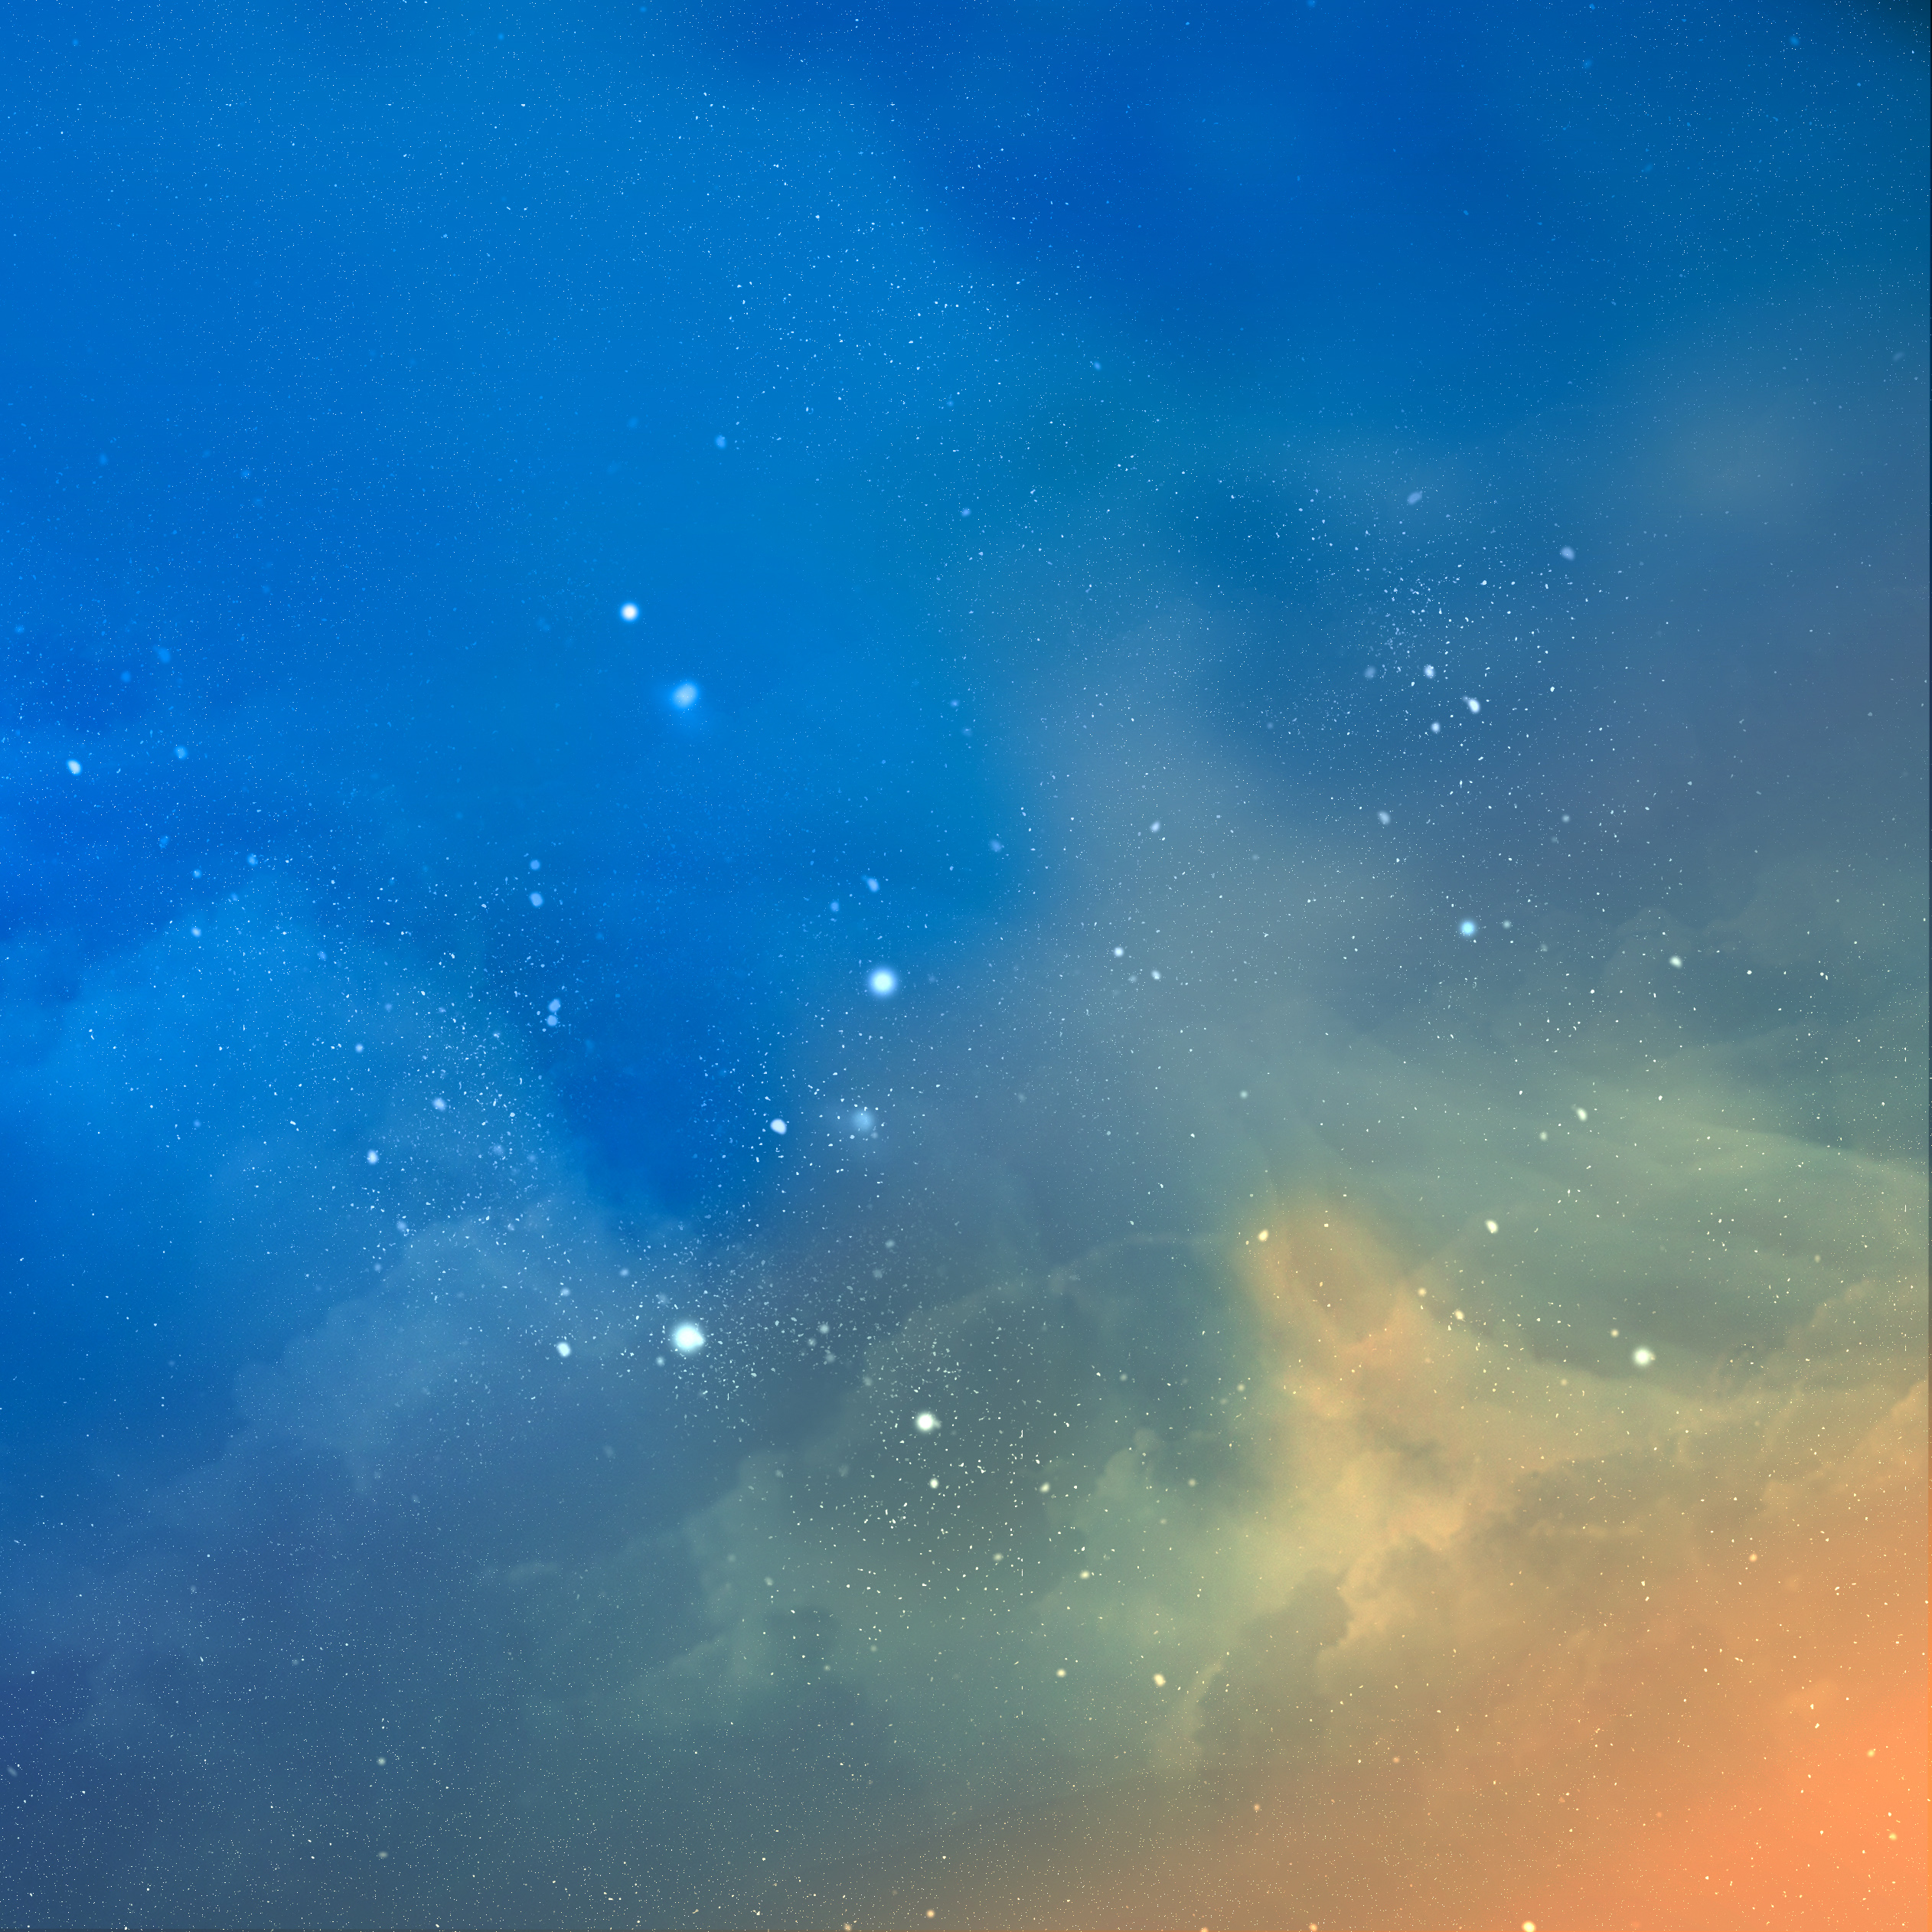 Iphone Wallpaper: Galaxy Wallpapers